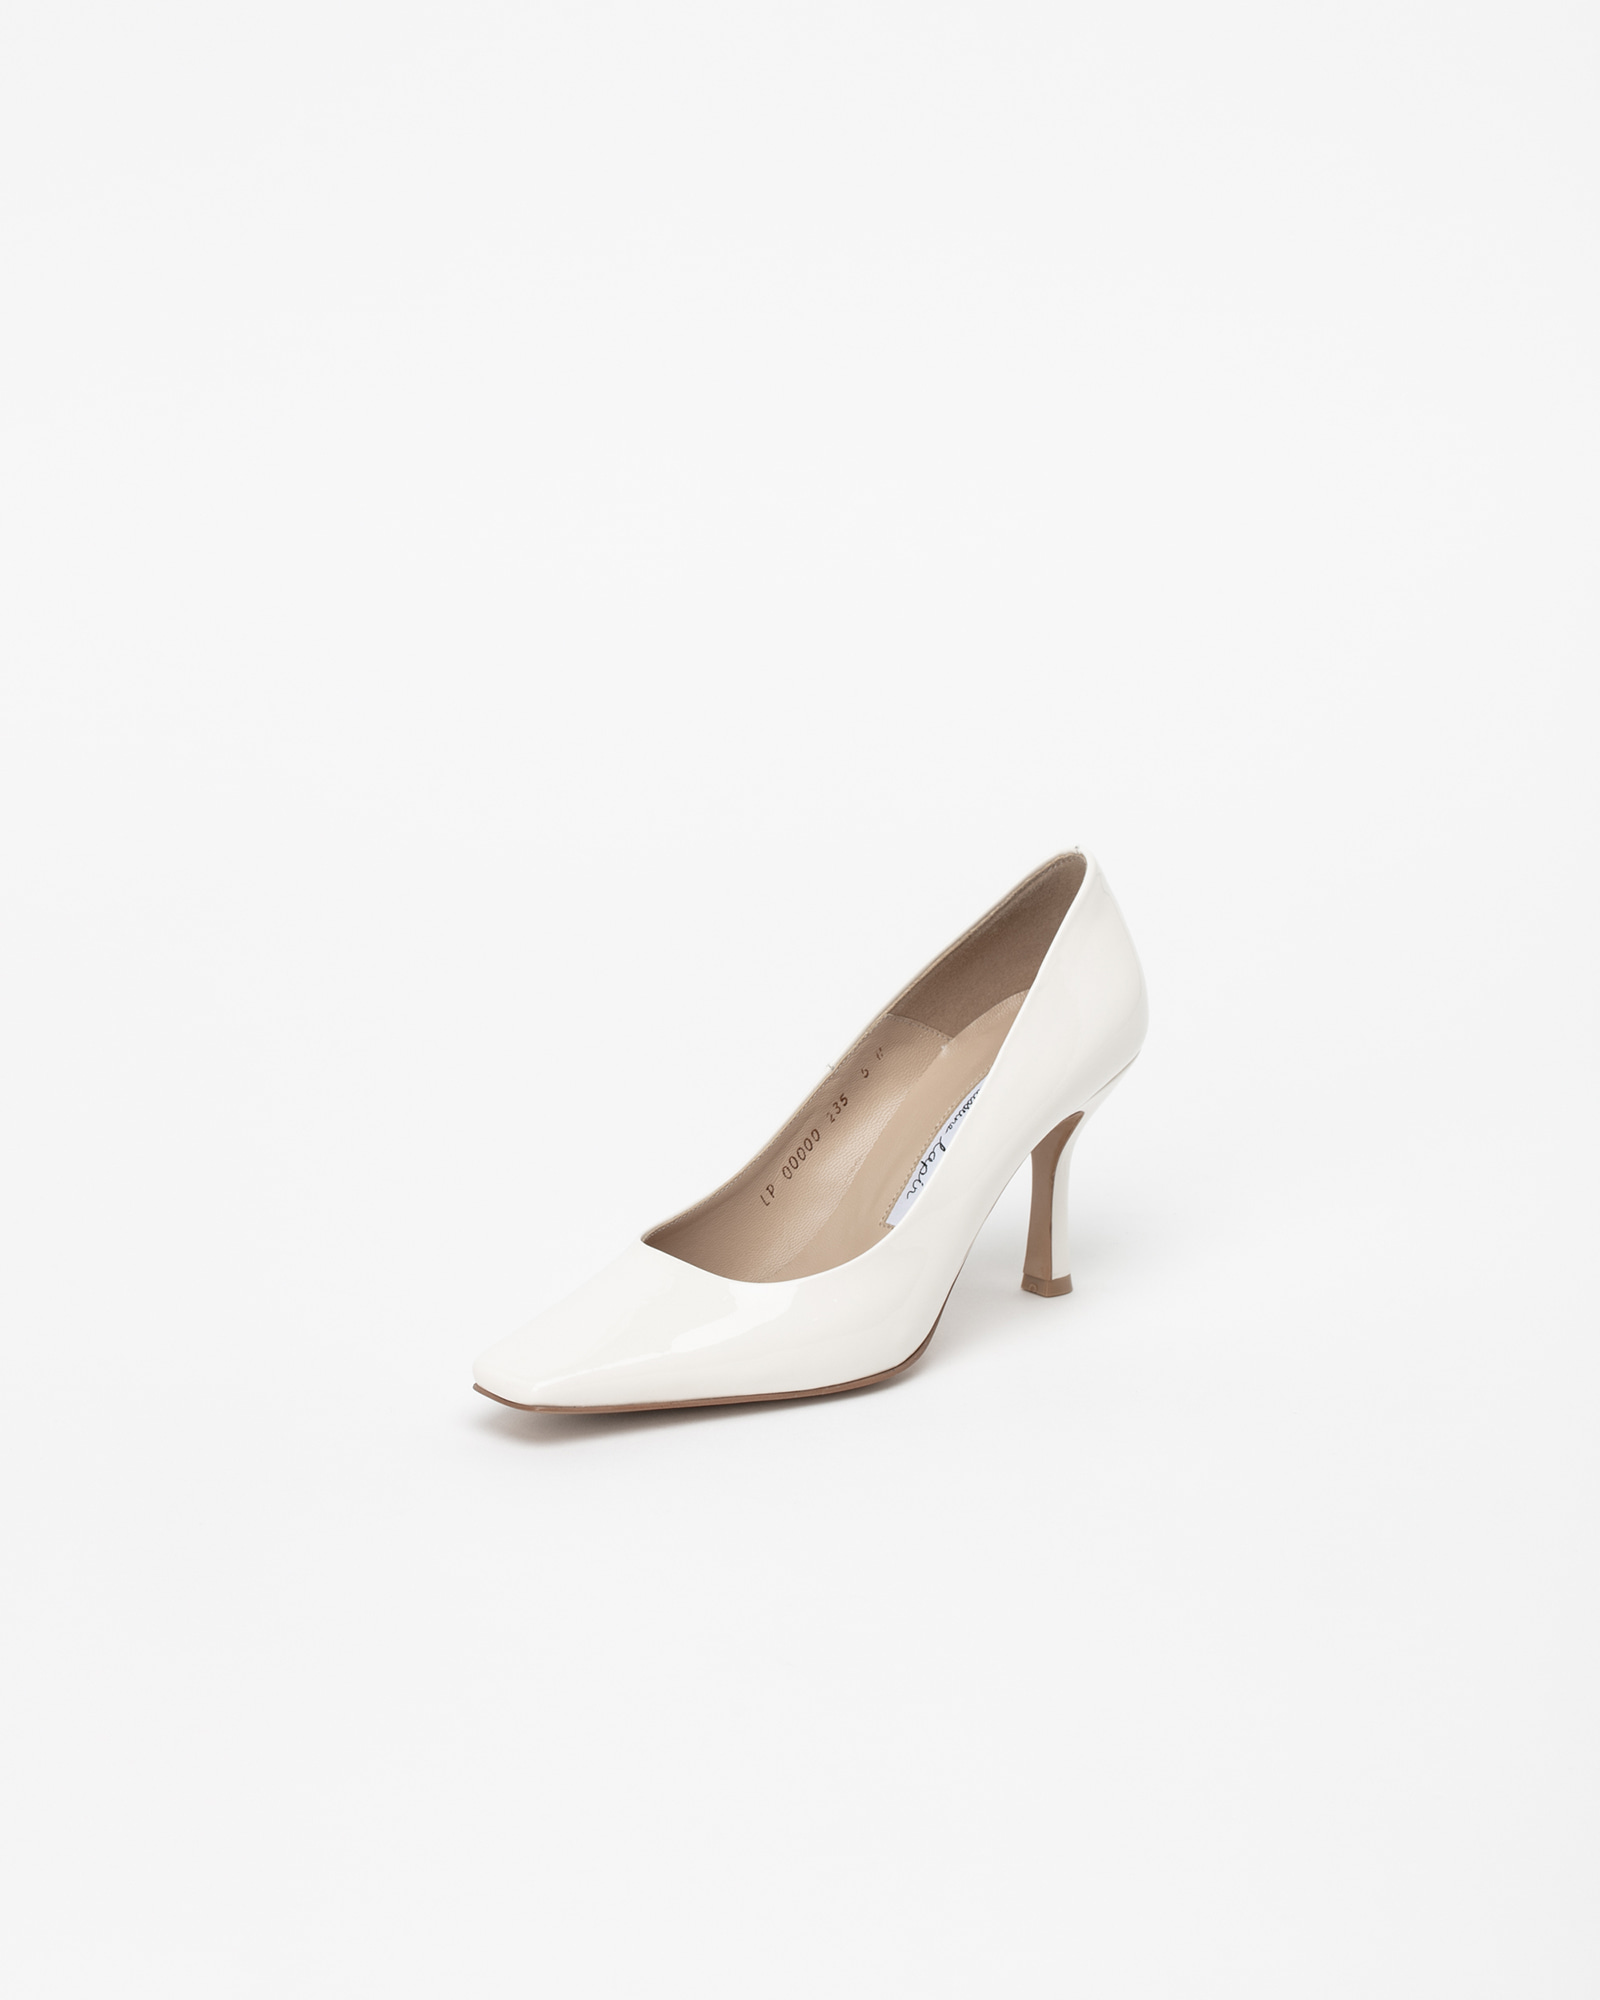 Seraff Pumps in Milky White Patent